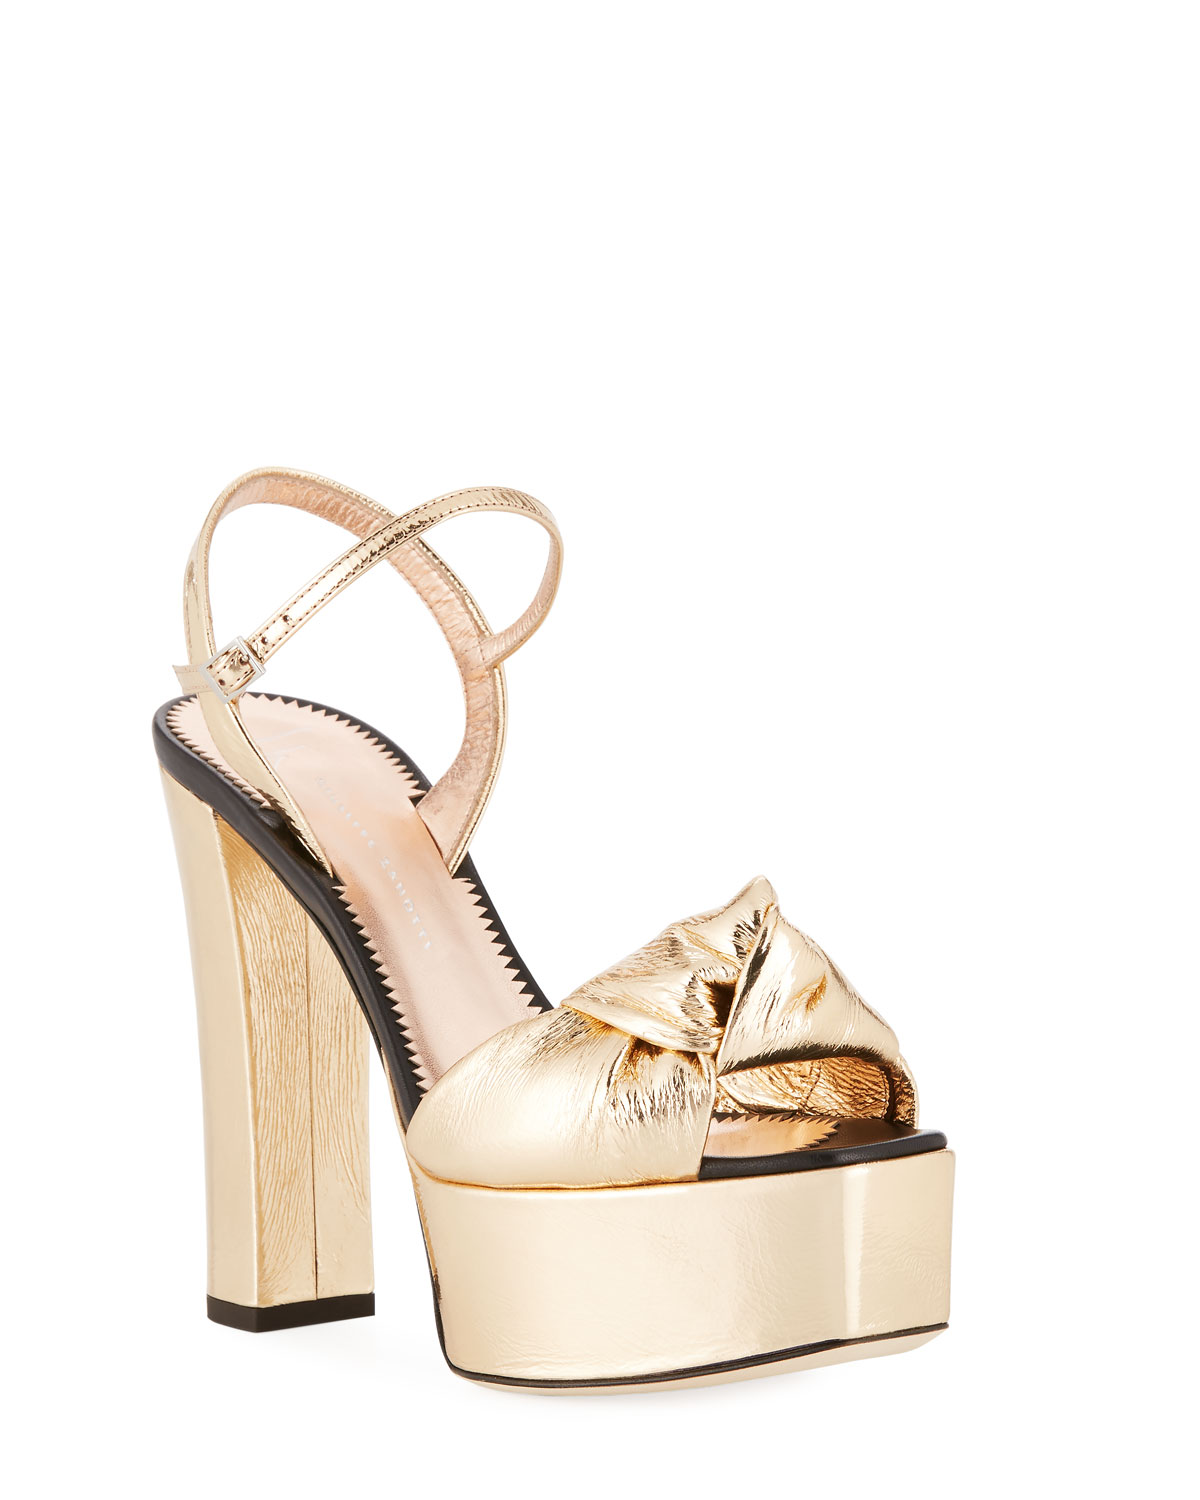 708211f8be2 Giuseppe Zanotti Knotted Metallic Platform Sandals